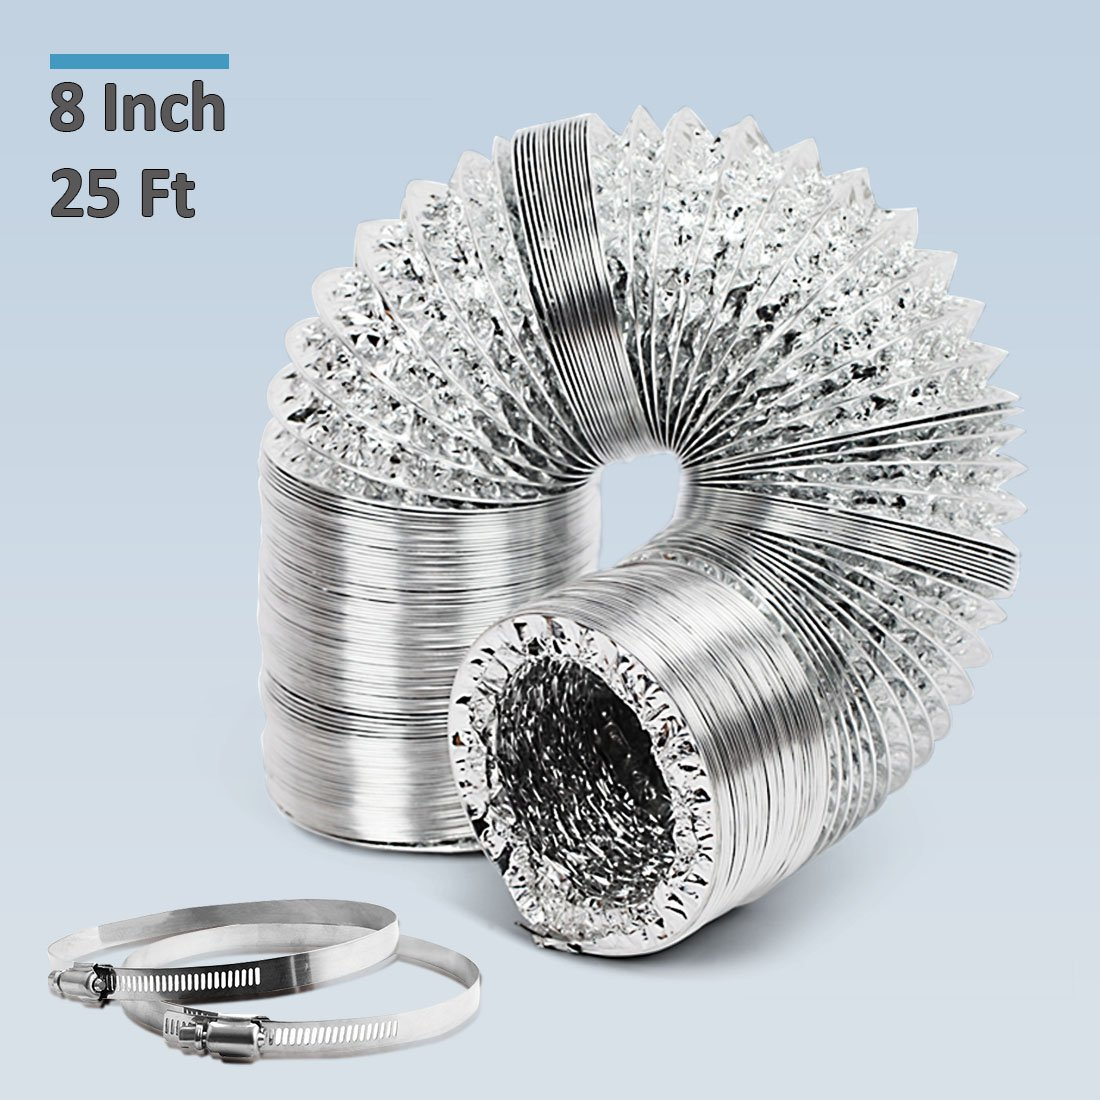 GROWNEER 8 Inch 25 Ft Aluminum Air Ducting with 2 Stainless Steel Clamps, Non-Insulated Flexible Air Duct Hose for HVAC Ventilation